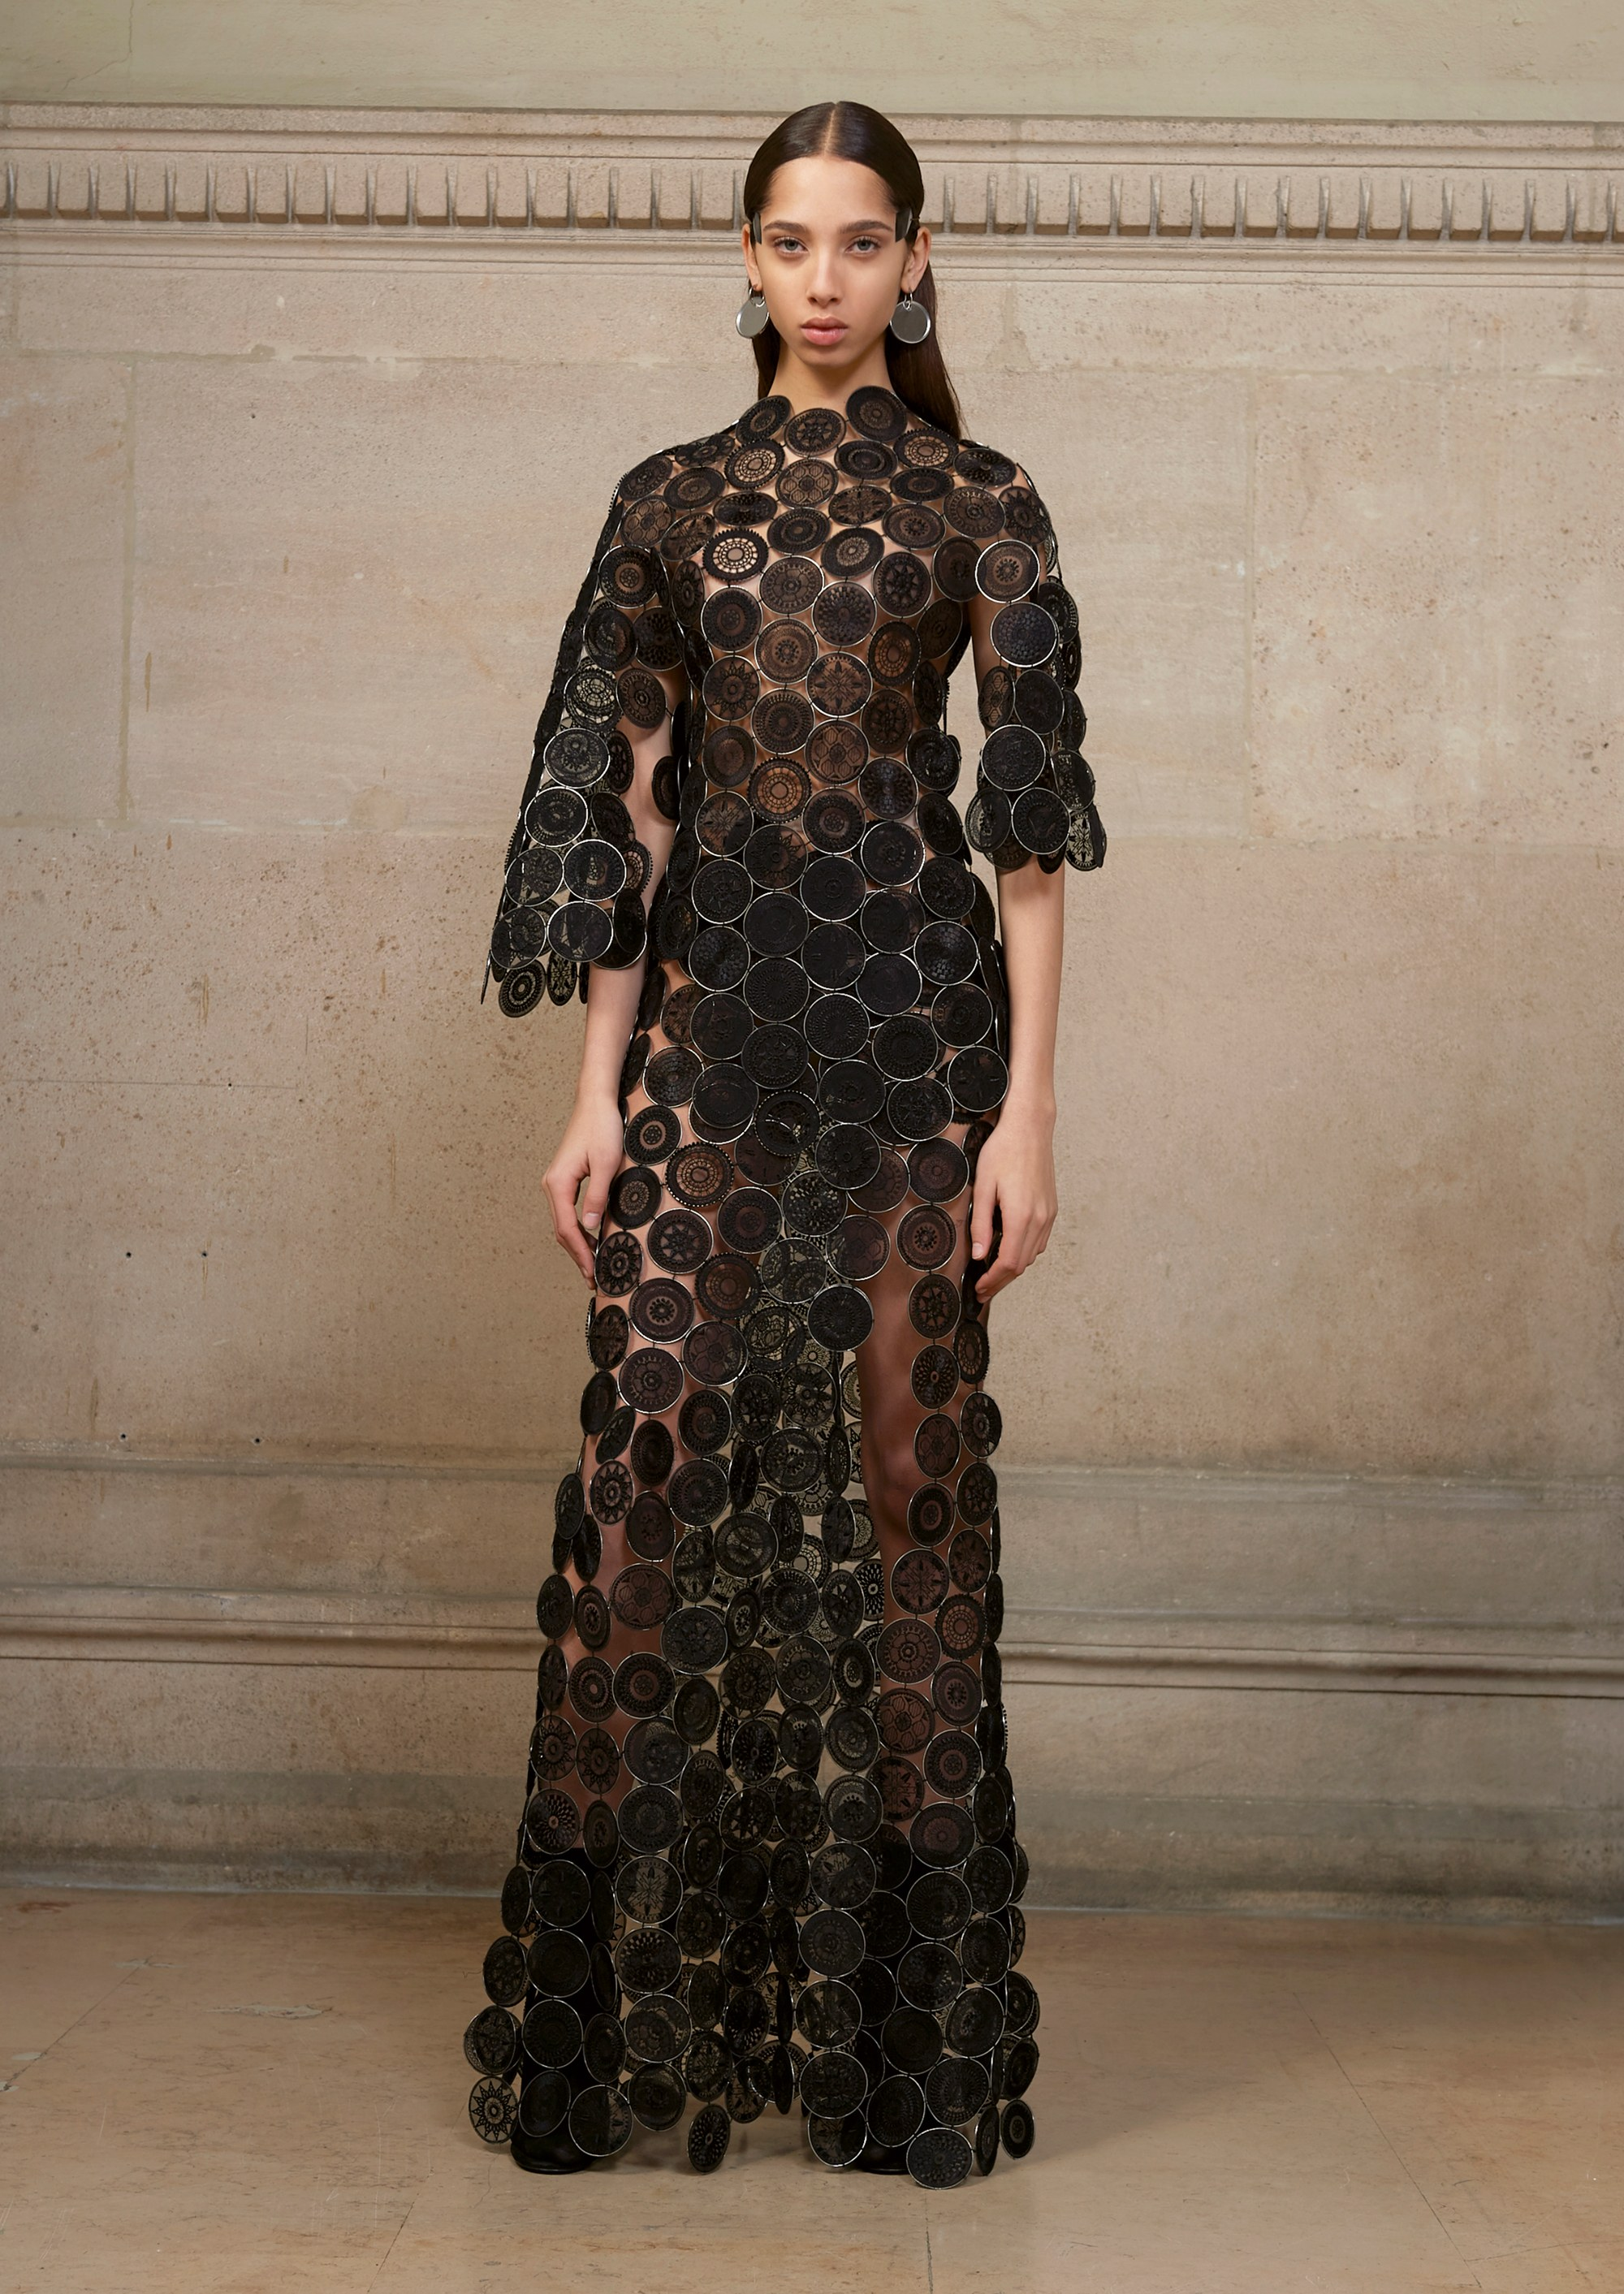 06-givenchy-couture-spring-2017.jpg